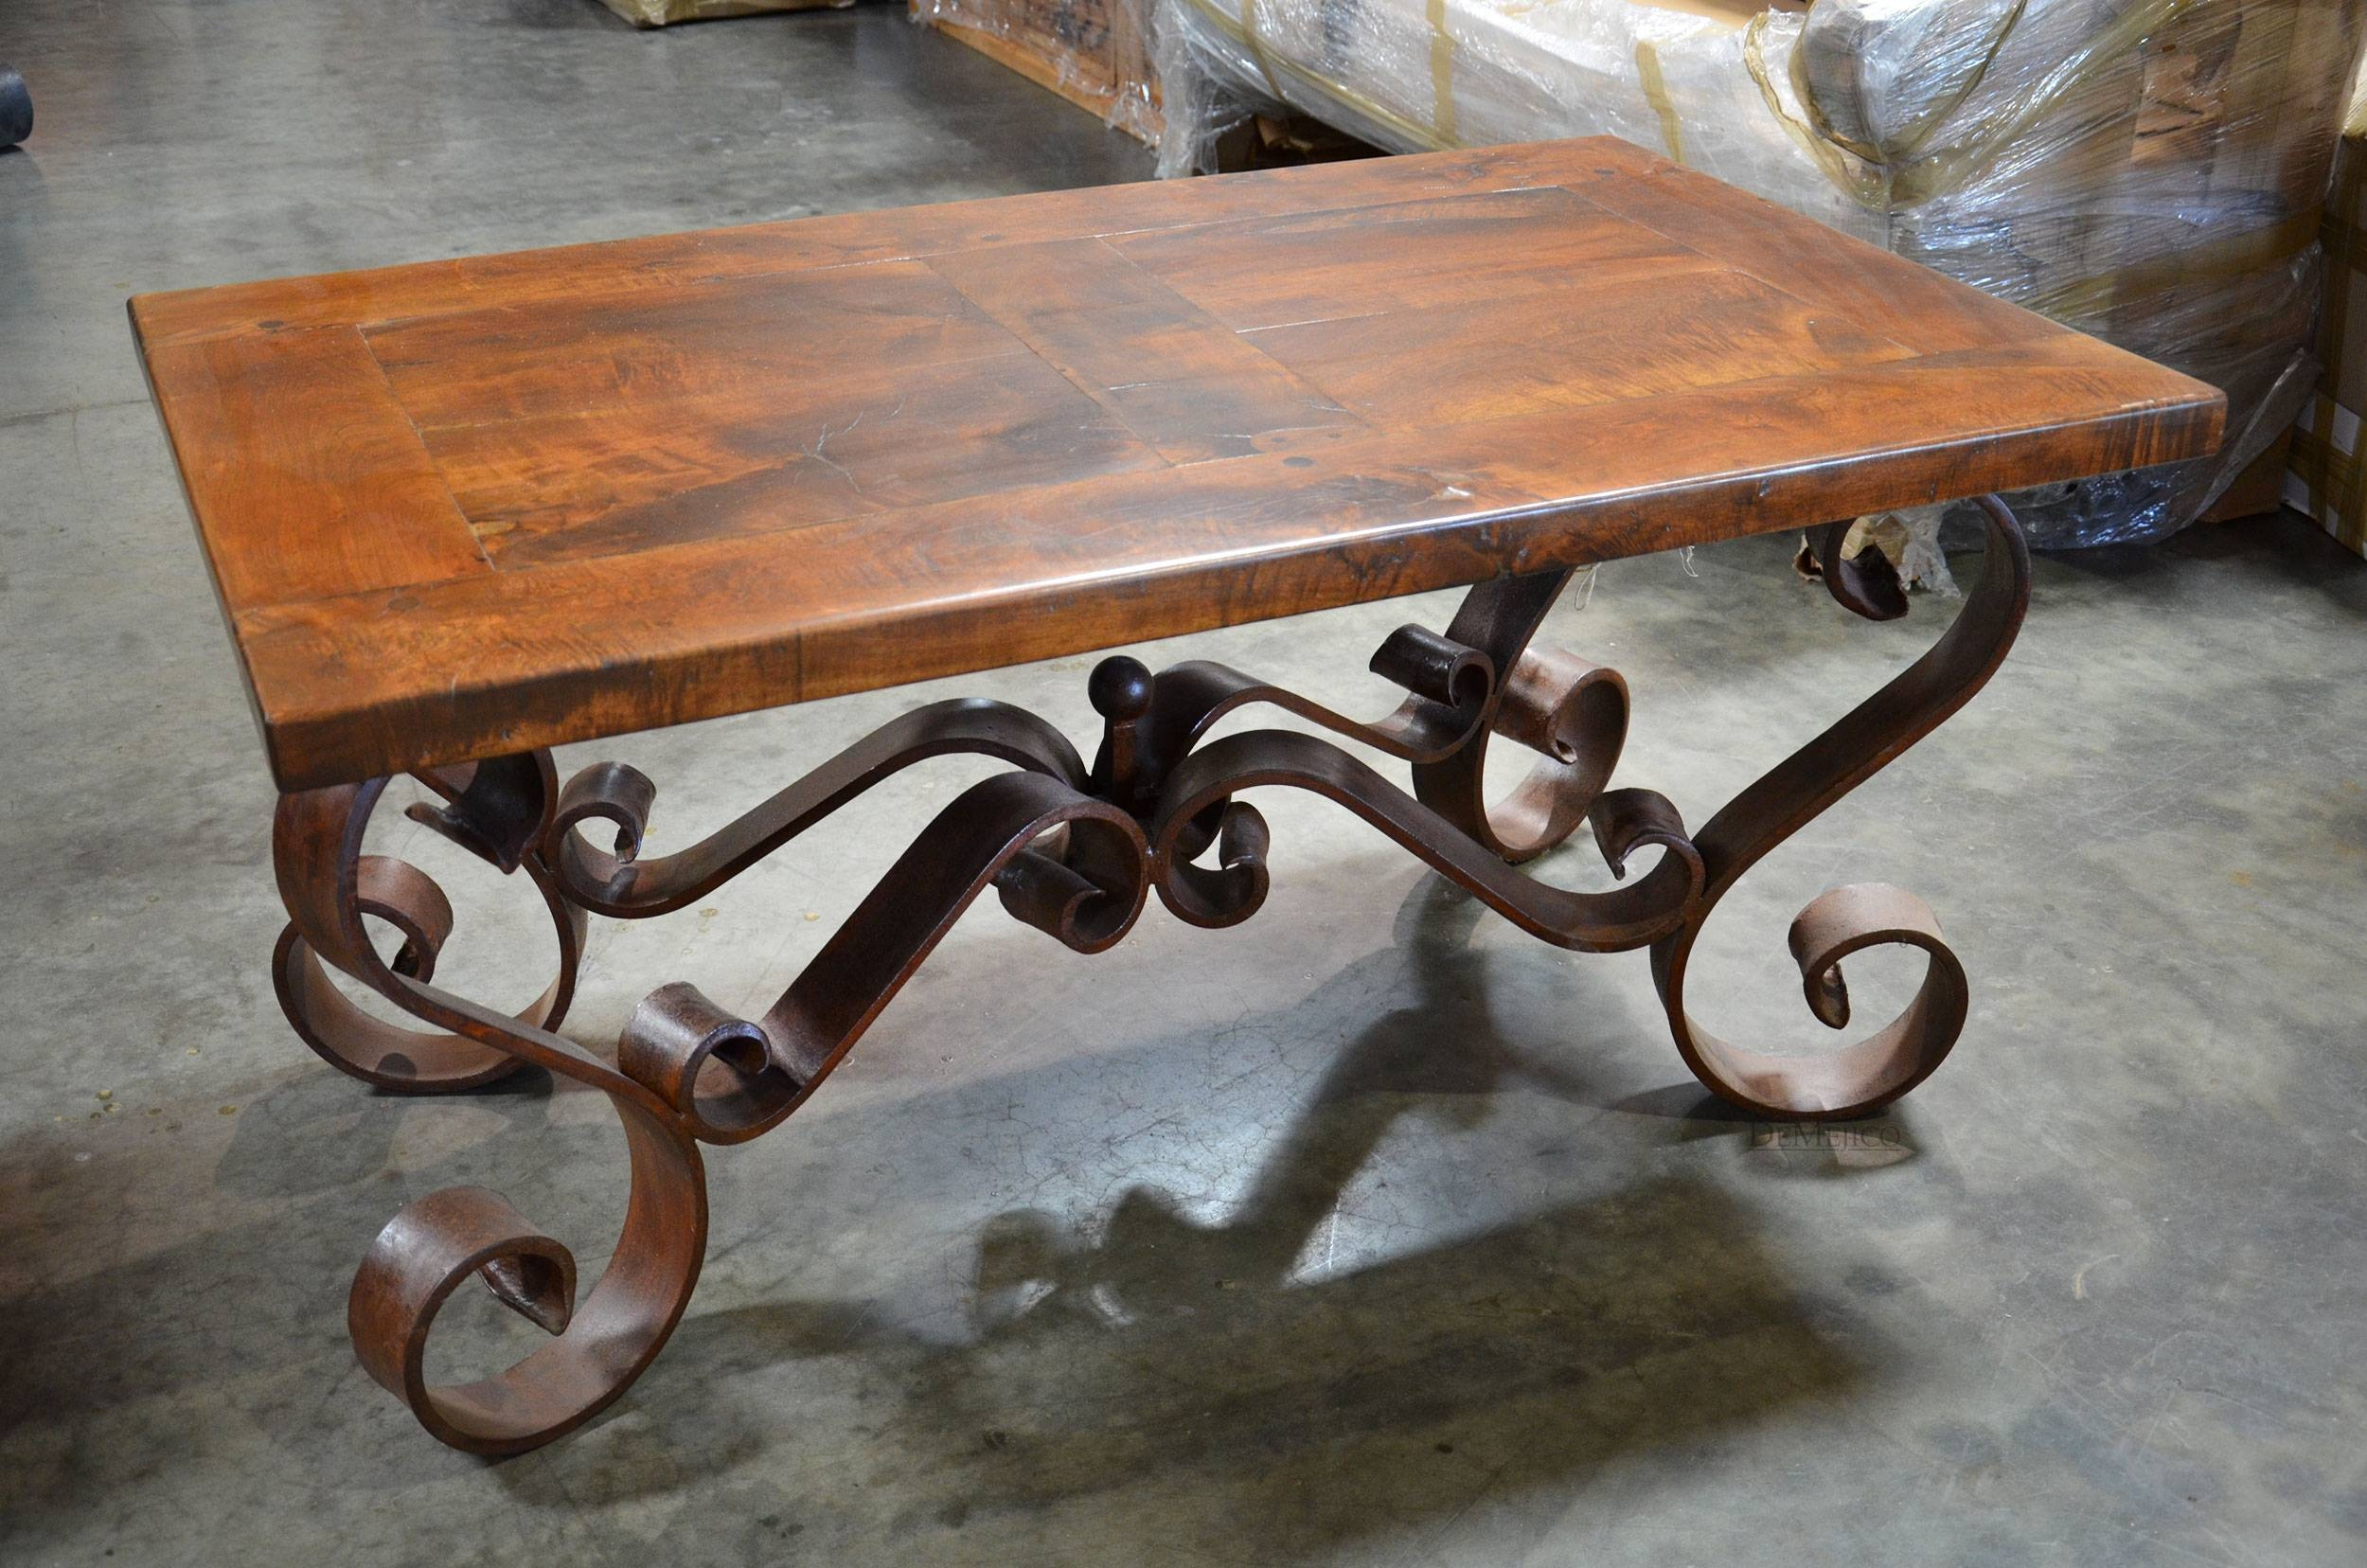 Wrought Iron Wood And Glass Coffee Table   Coffee Tables Decoration with regard to Wrought Iron Coffee Tables (Image 30 of 30)